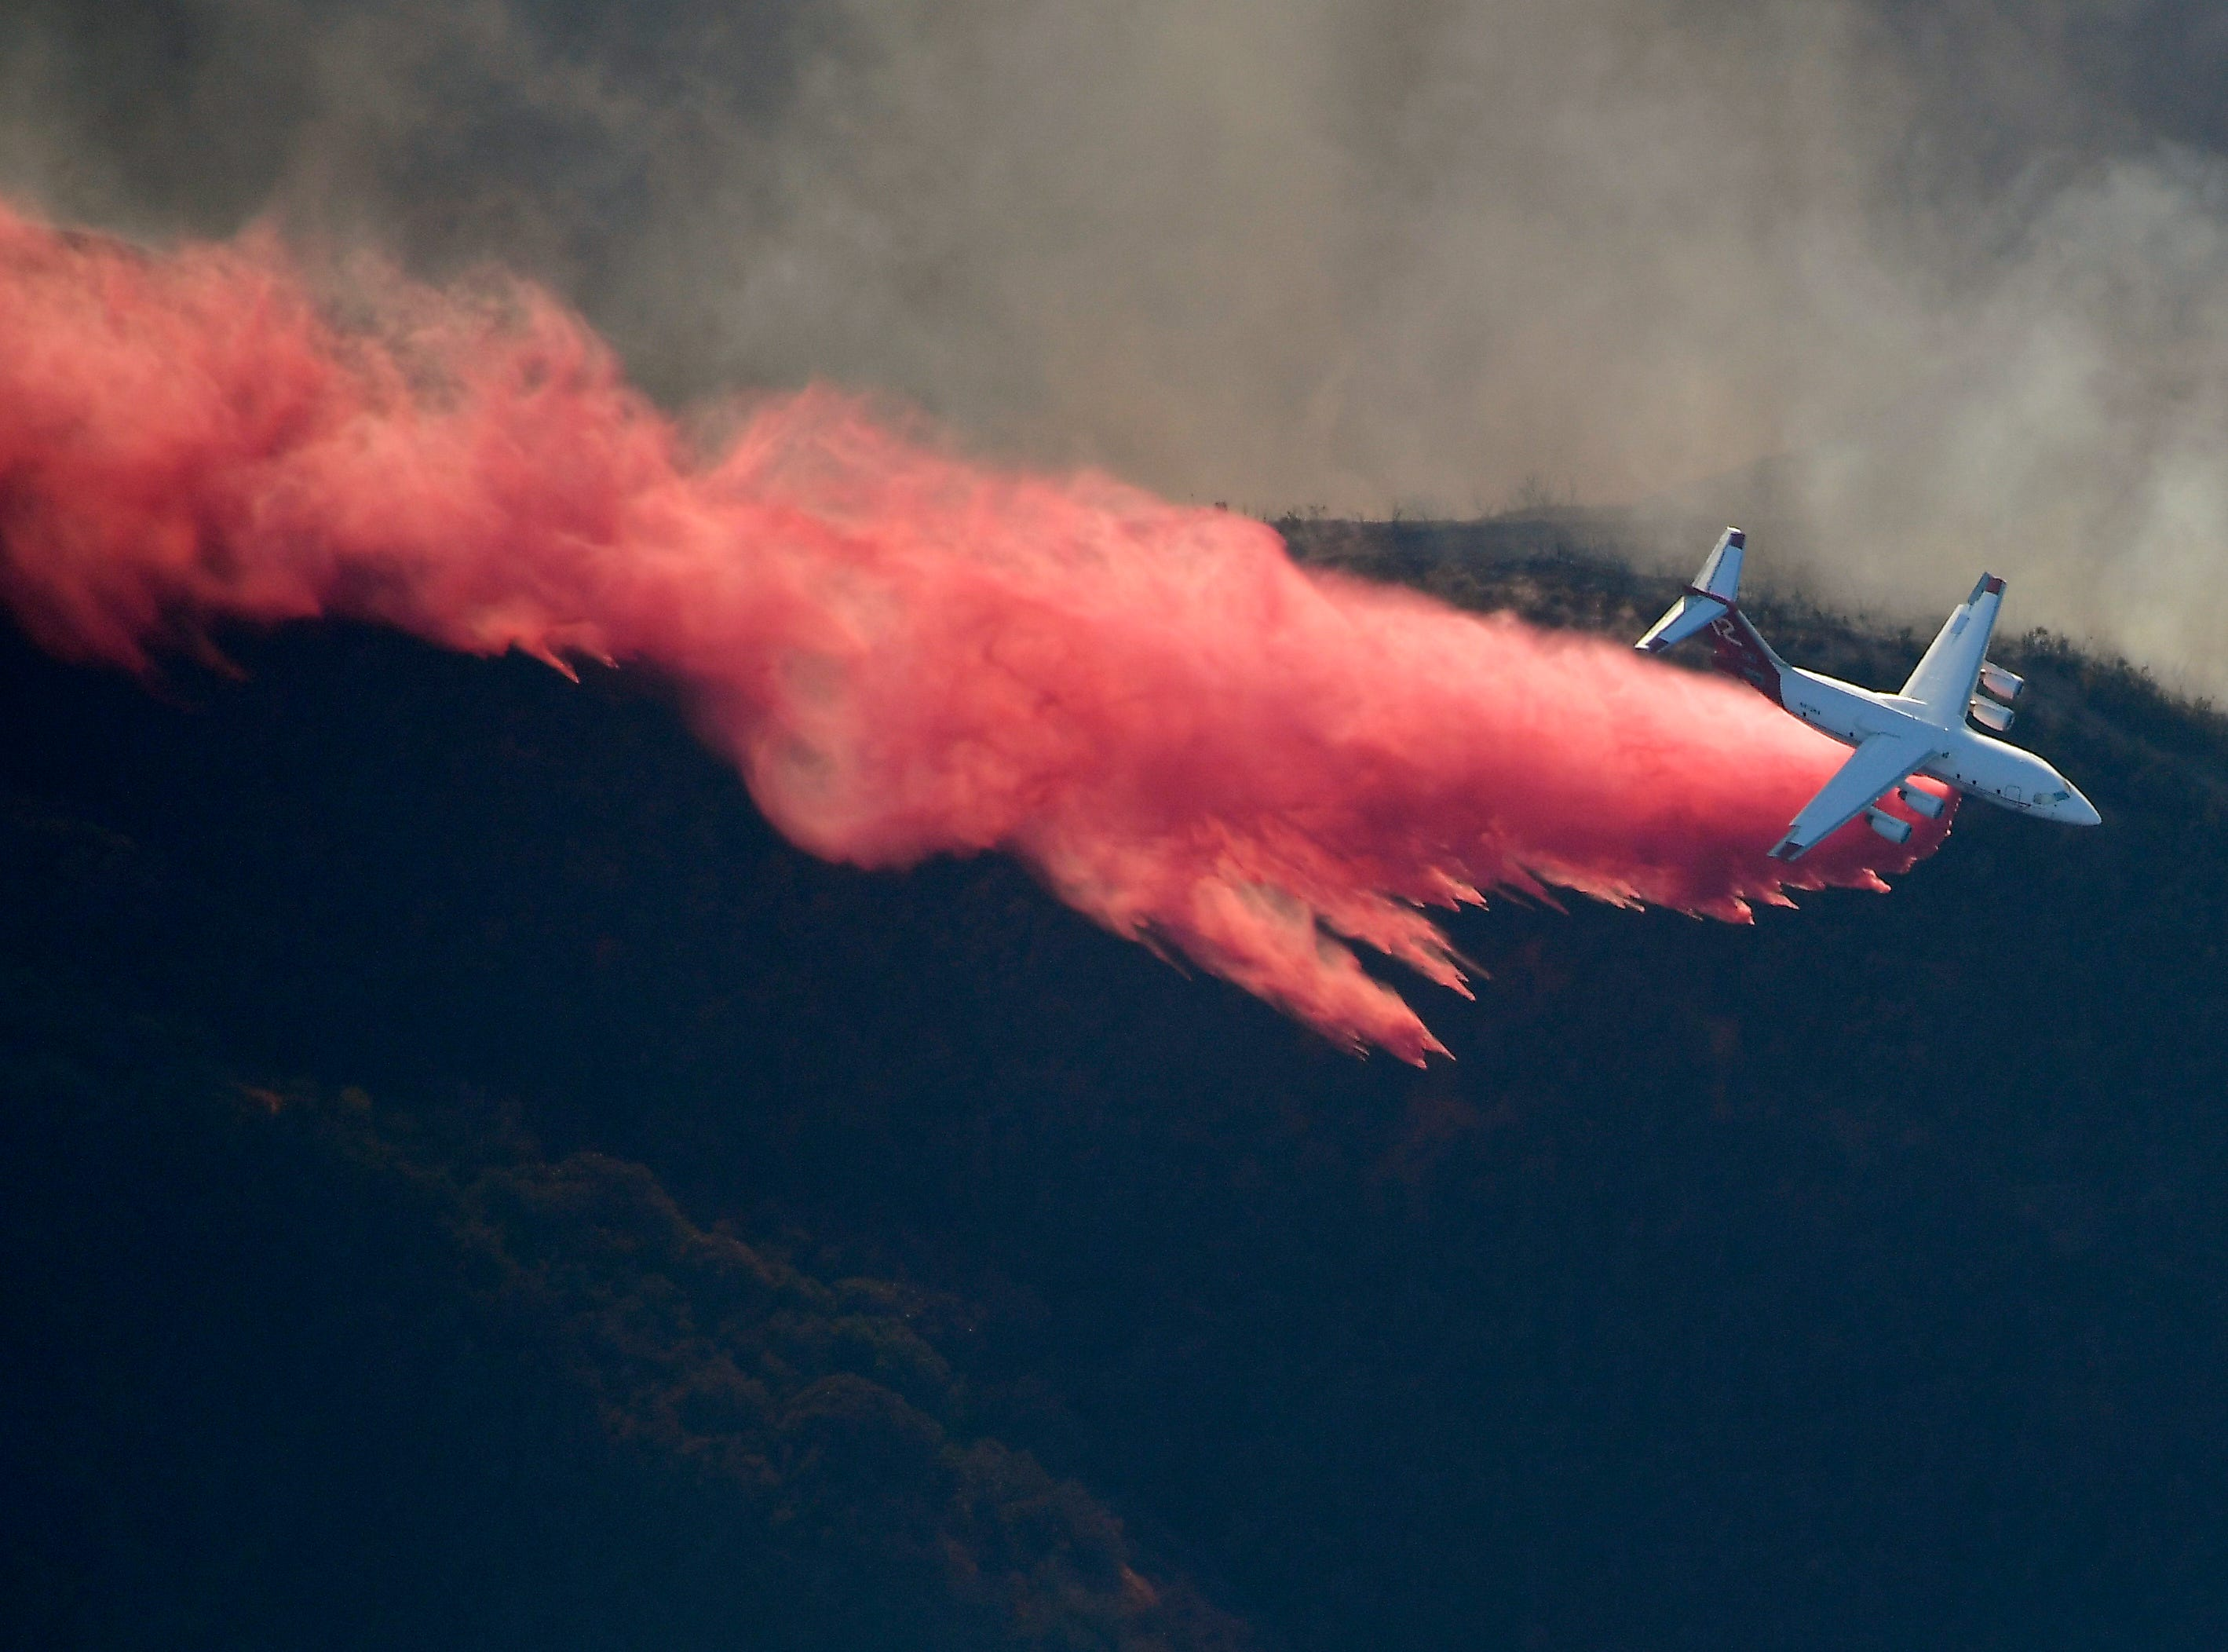 An air tanker drops flame retardant to protect homes from the Woolsey Fire on Friday in Calabasas.